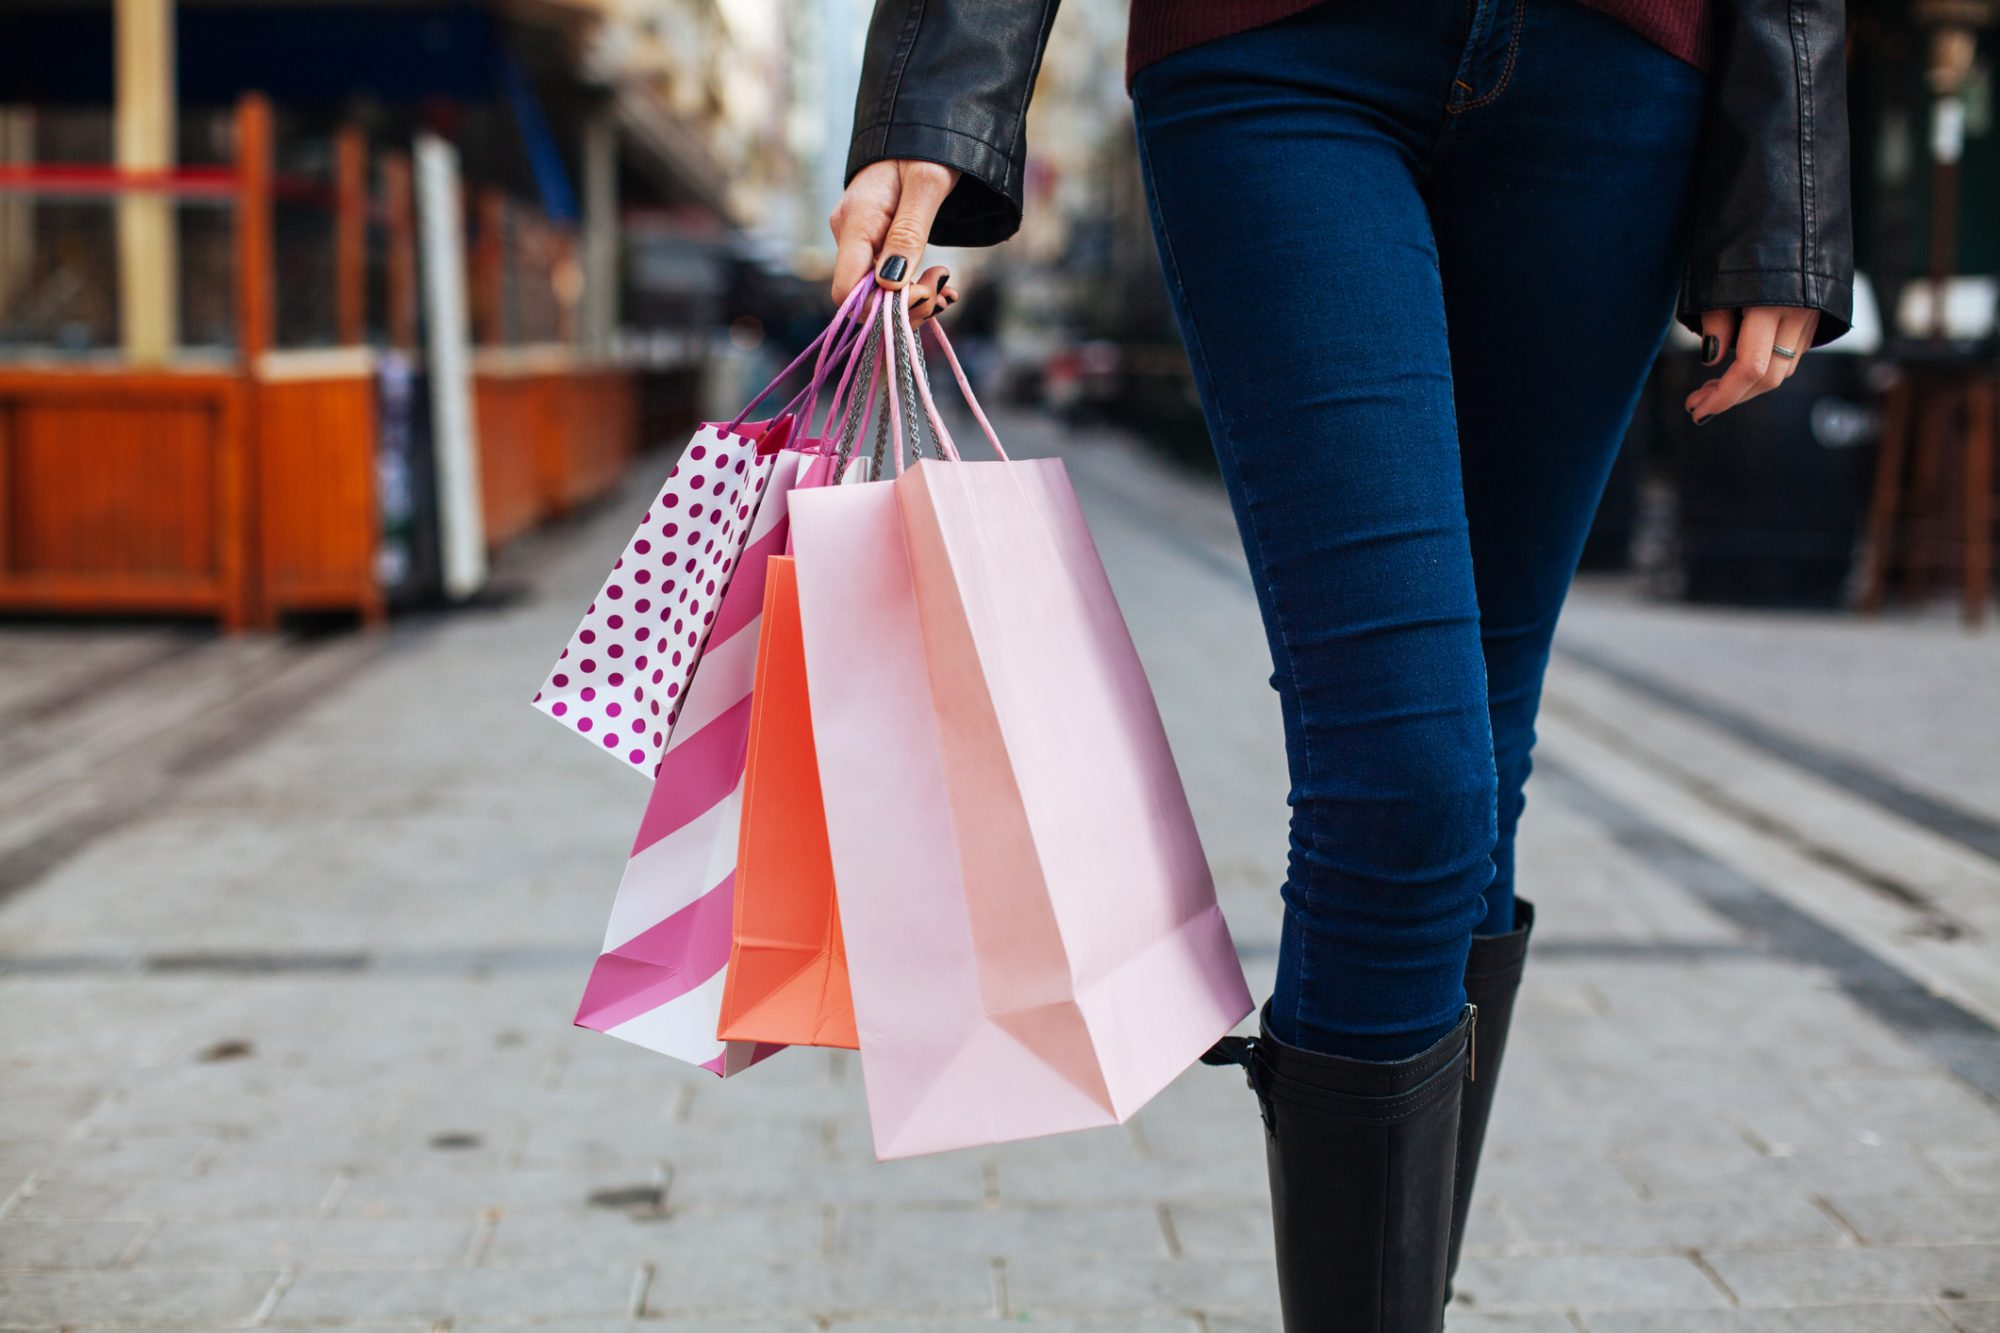 These Stores Have the Best Black Friday Deals This Year, According to a New Survey